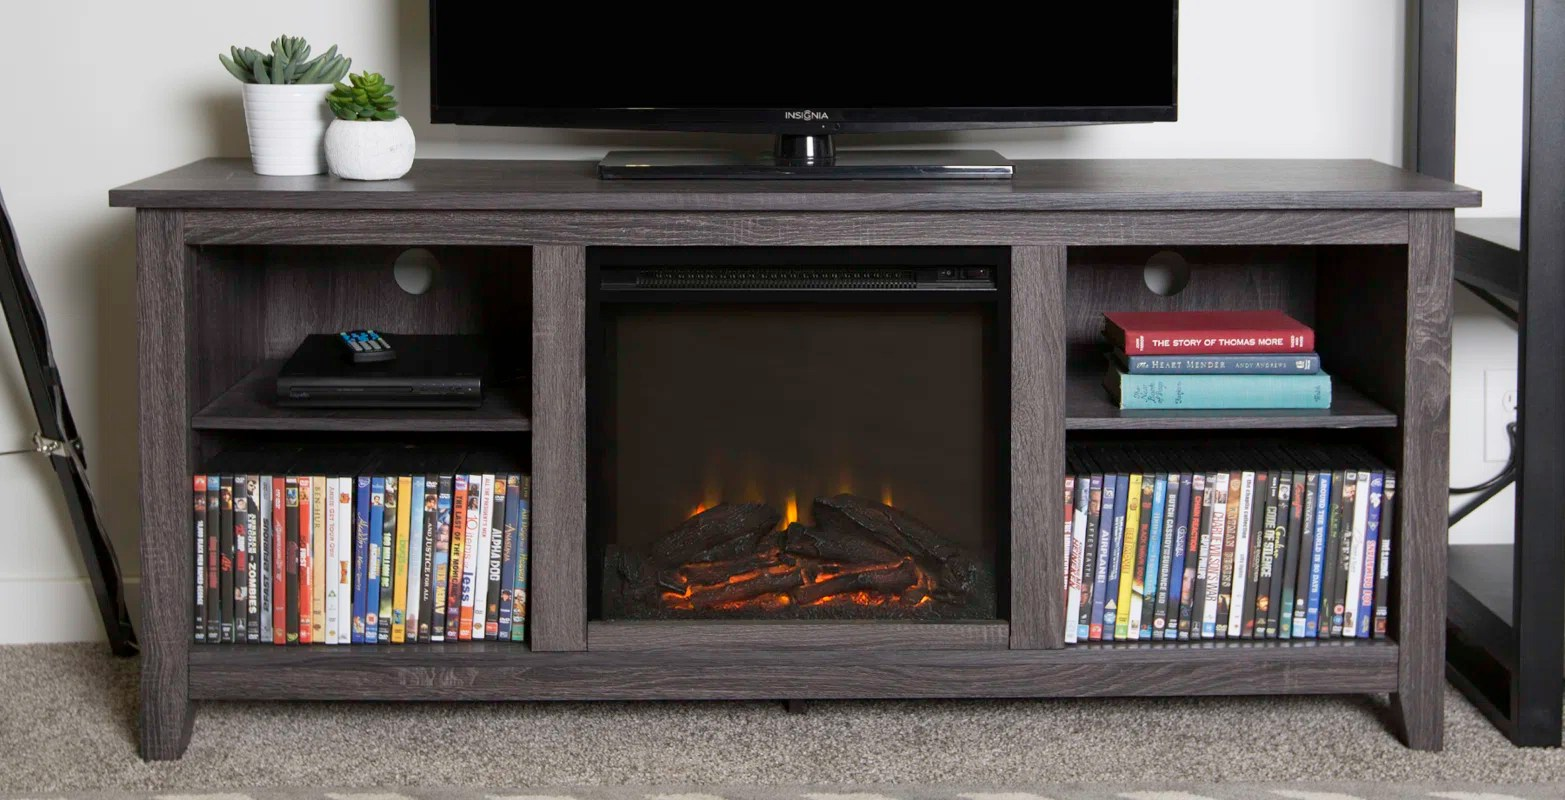 Tennyson Bookcase Electric Fireplace Best Electric Fireplace On The Market The Definitive Buyer S Guide